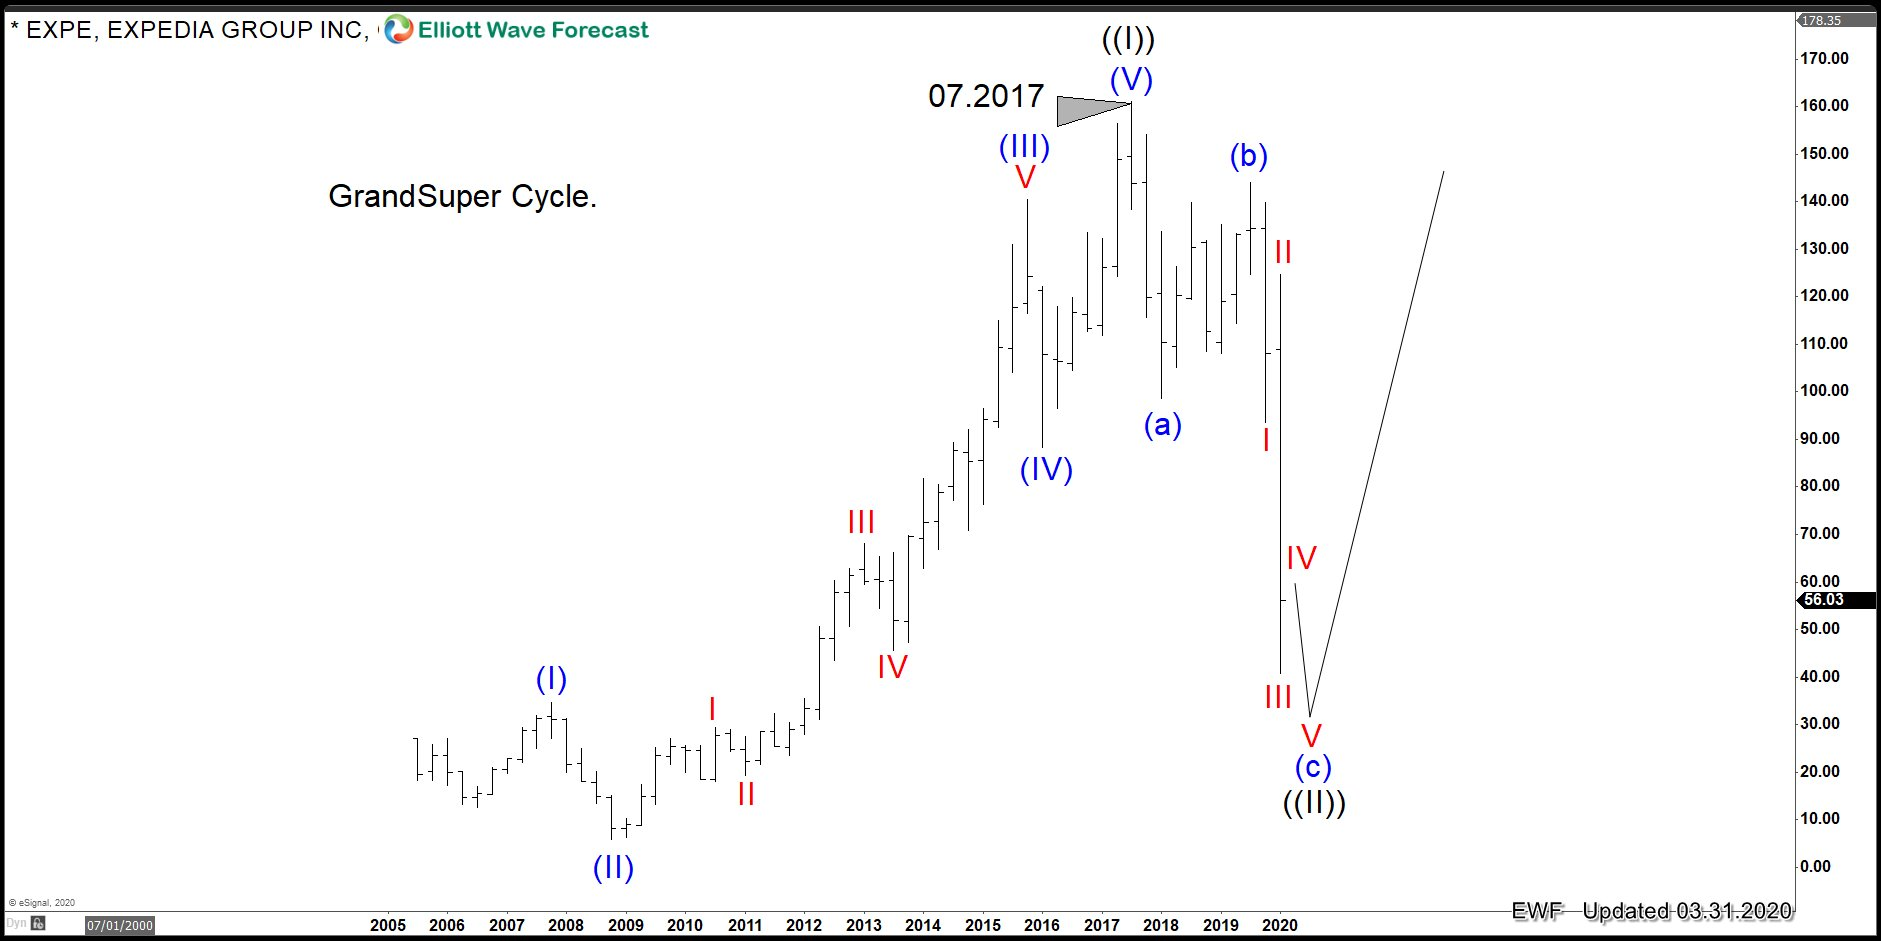 Expedia: The Stock Shows Classic Elliott Wave Pattern